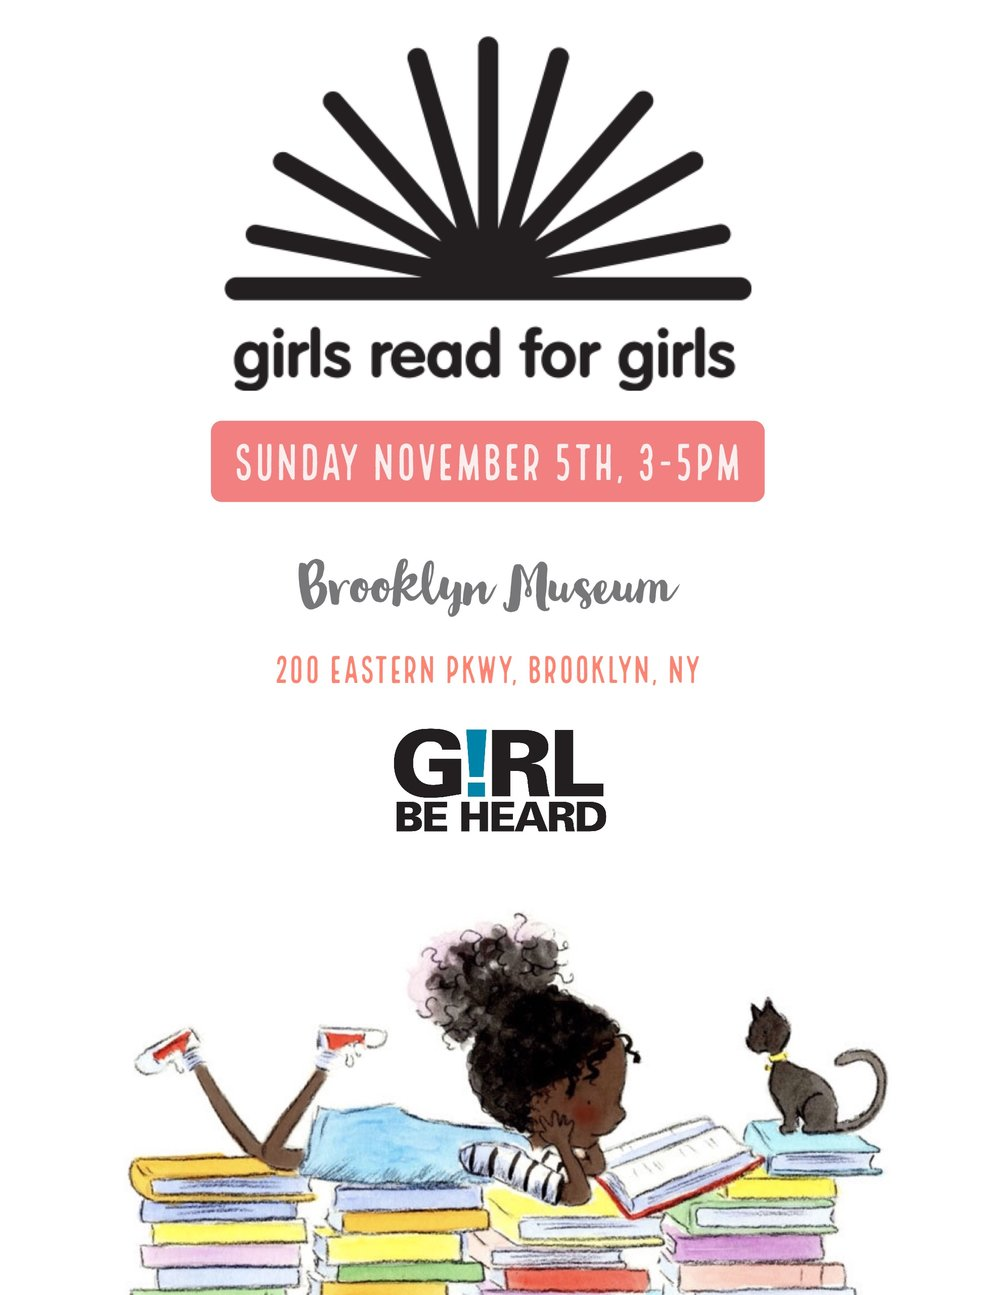 Girls Read For Girls! - Celebrate the Girls Read for Girls read-a-thon! In this collaboration with our local arts center, Girl Be Heard company members will participate in reading original work for K-8th graders at the Brooklyn Museum. The day's events will raise money for the Malala Fund, which works to secure the rights of girls to a minimum of twelve years of education.This is a free event, but requires registration.